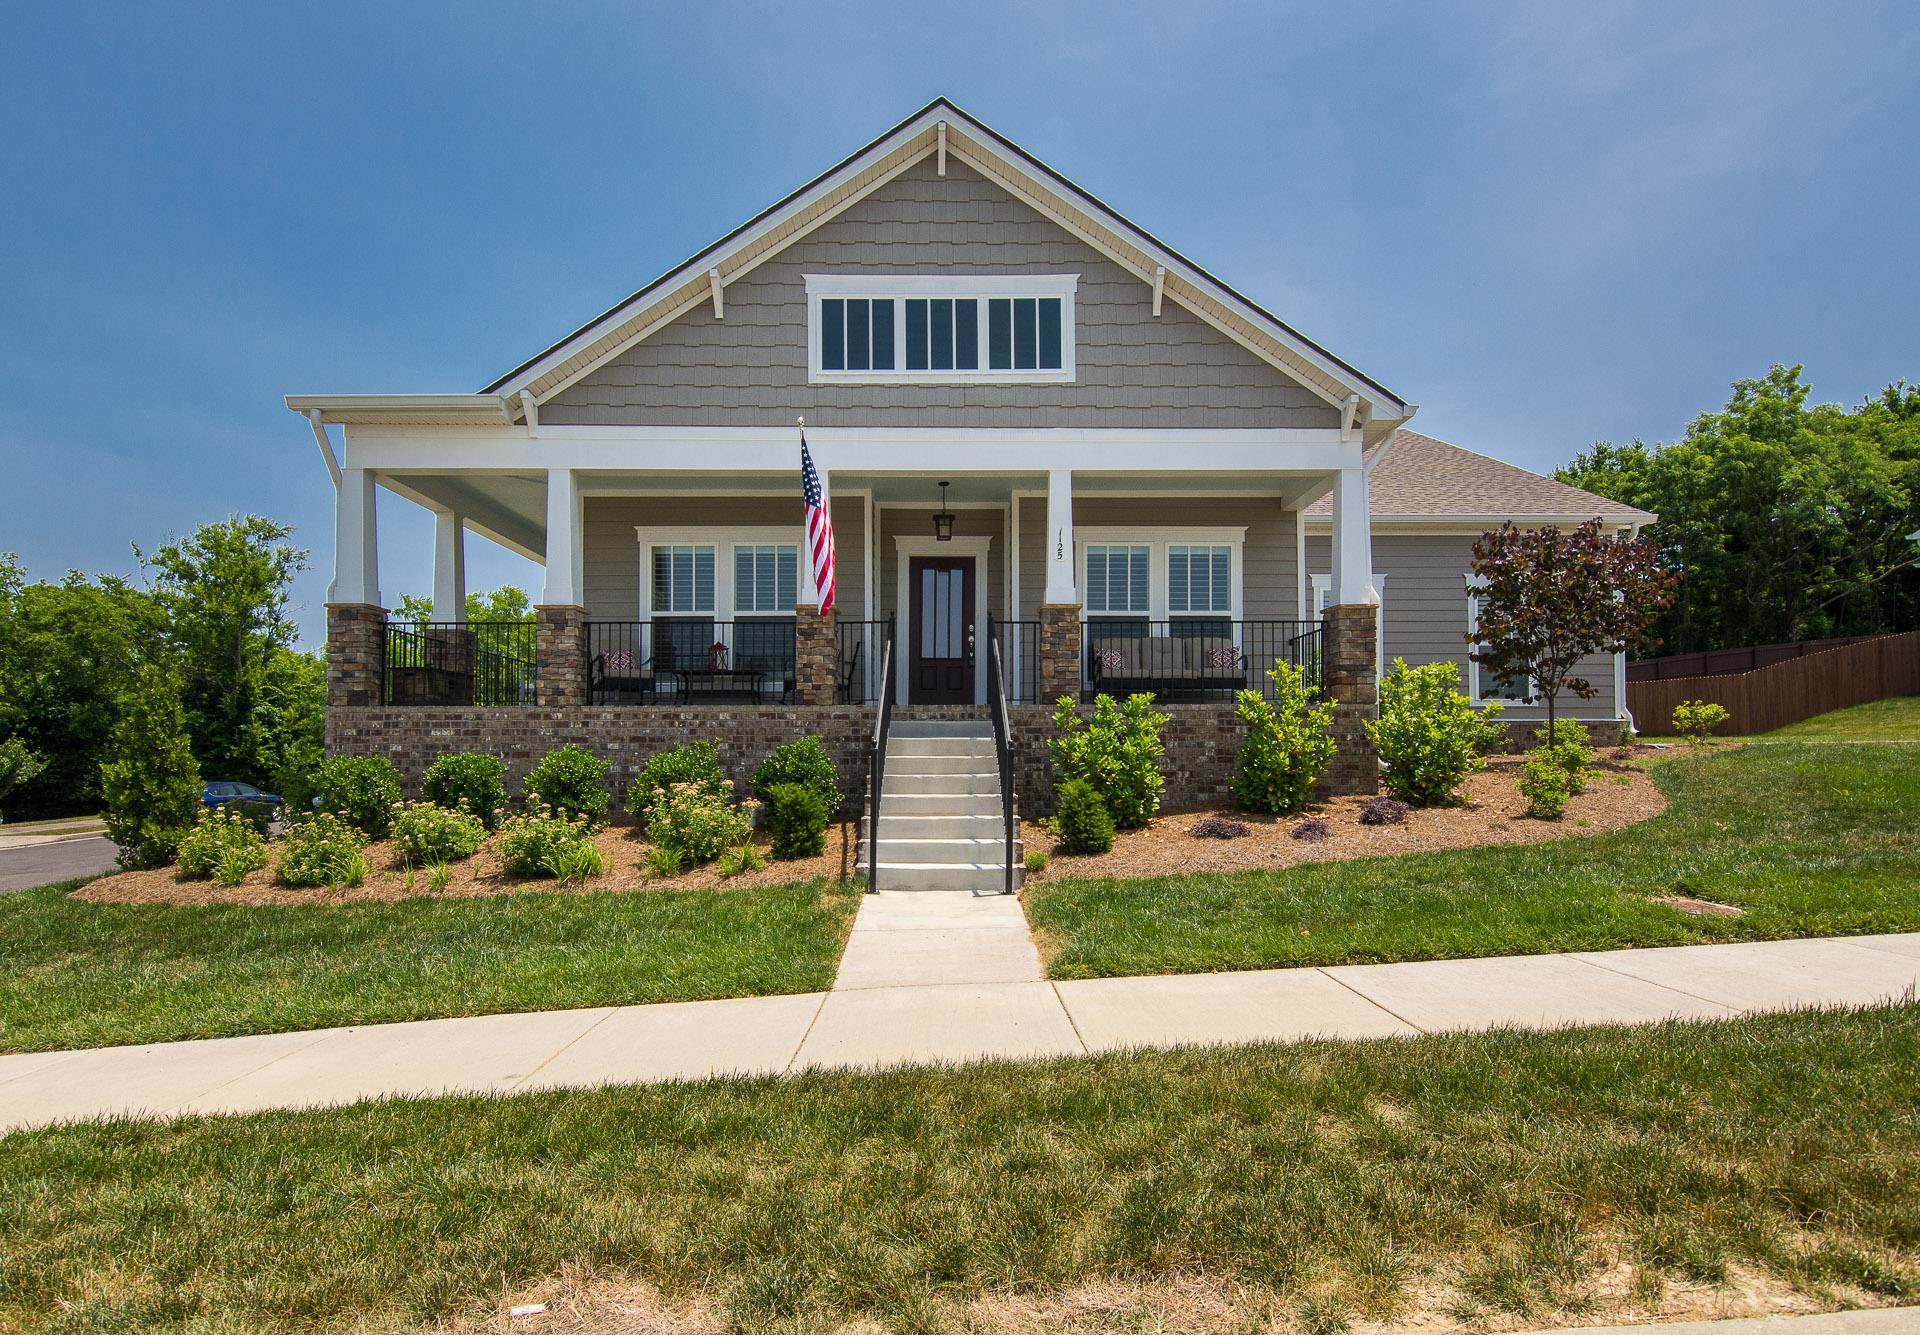 1125 Princeton Hills Dr, Nolensville in Davidson County County, TN 37135 Home for Sale